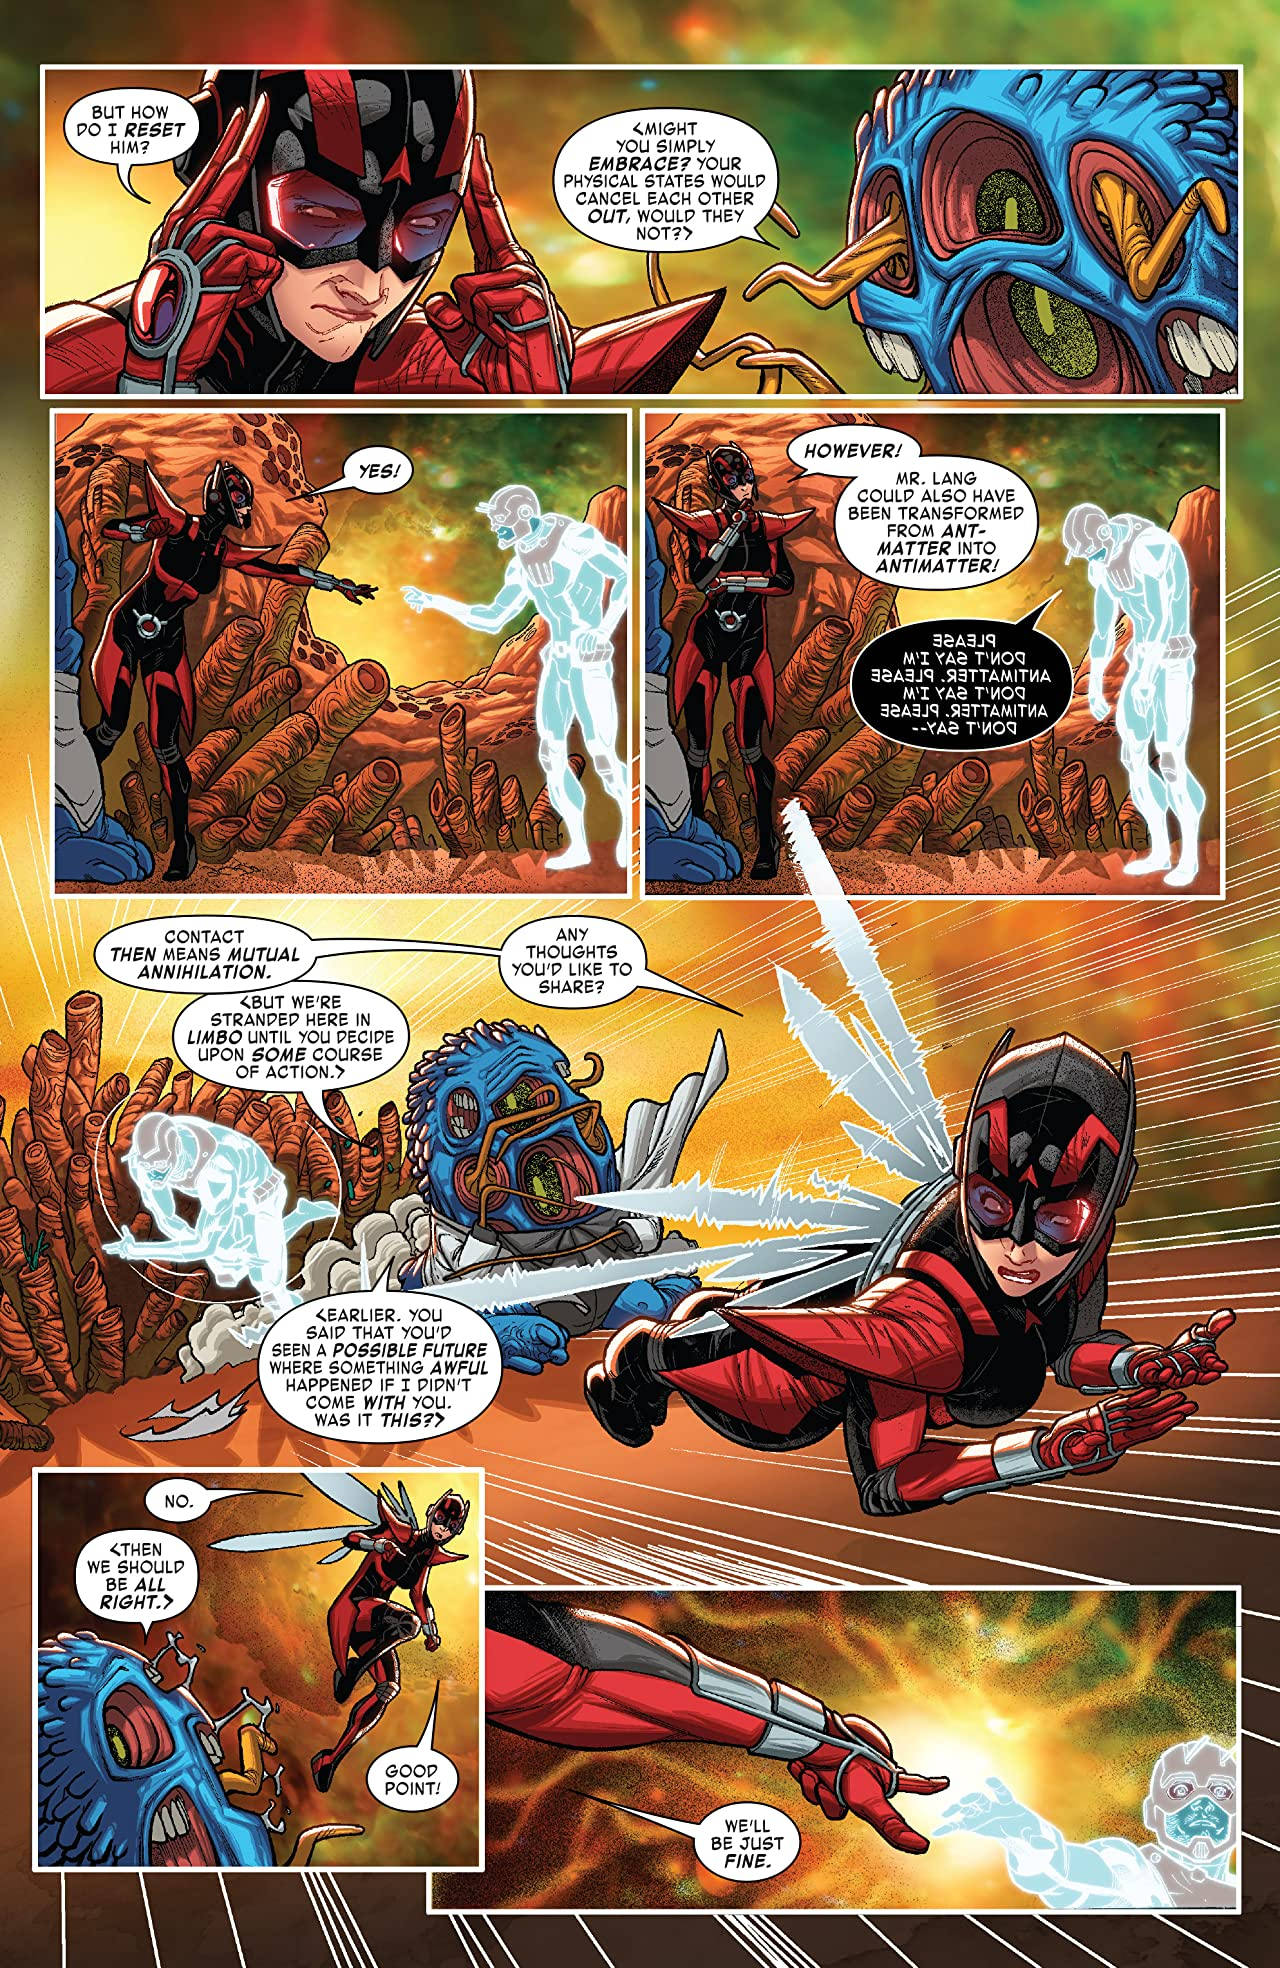 Ant-Man & The Wasp (2018) #4 (of 5)